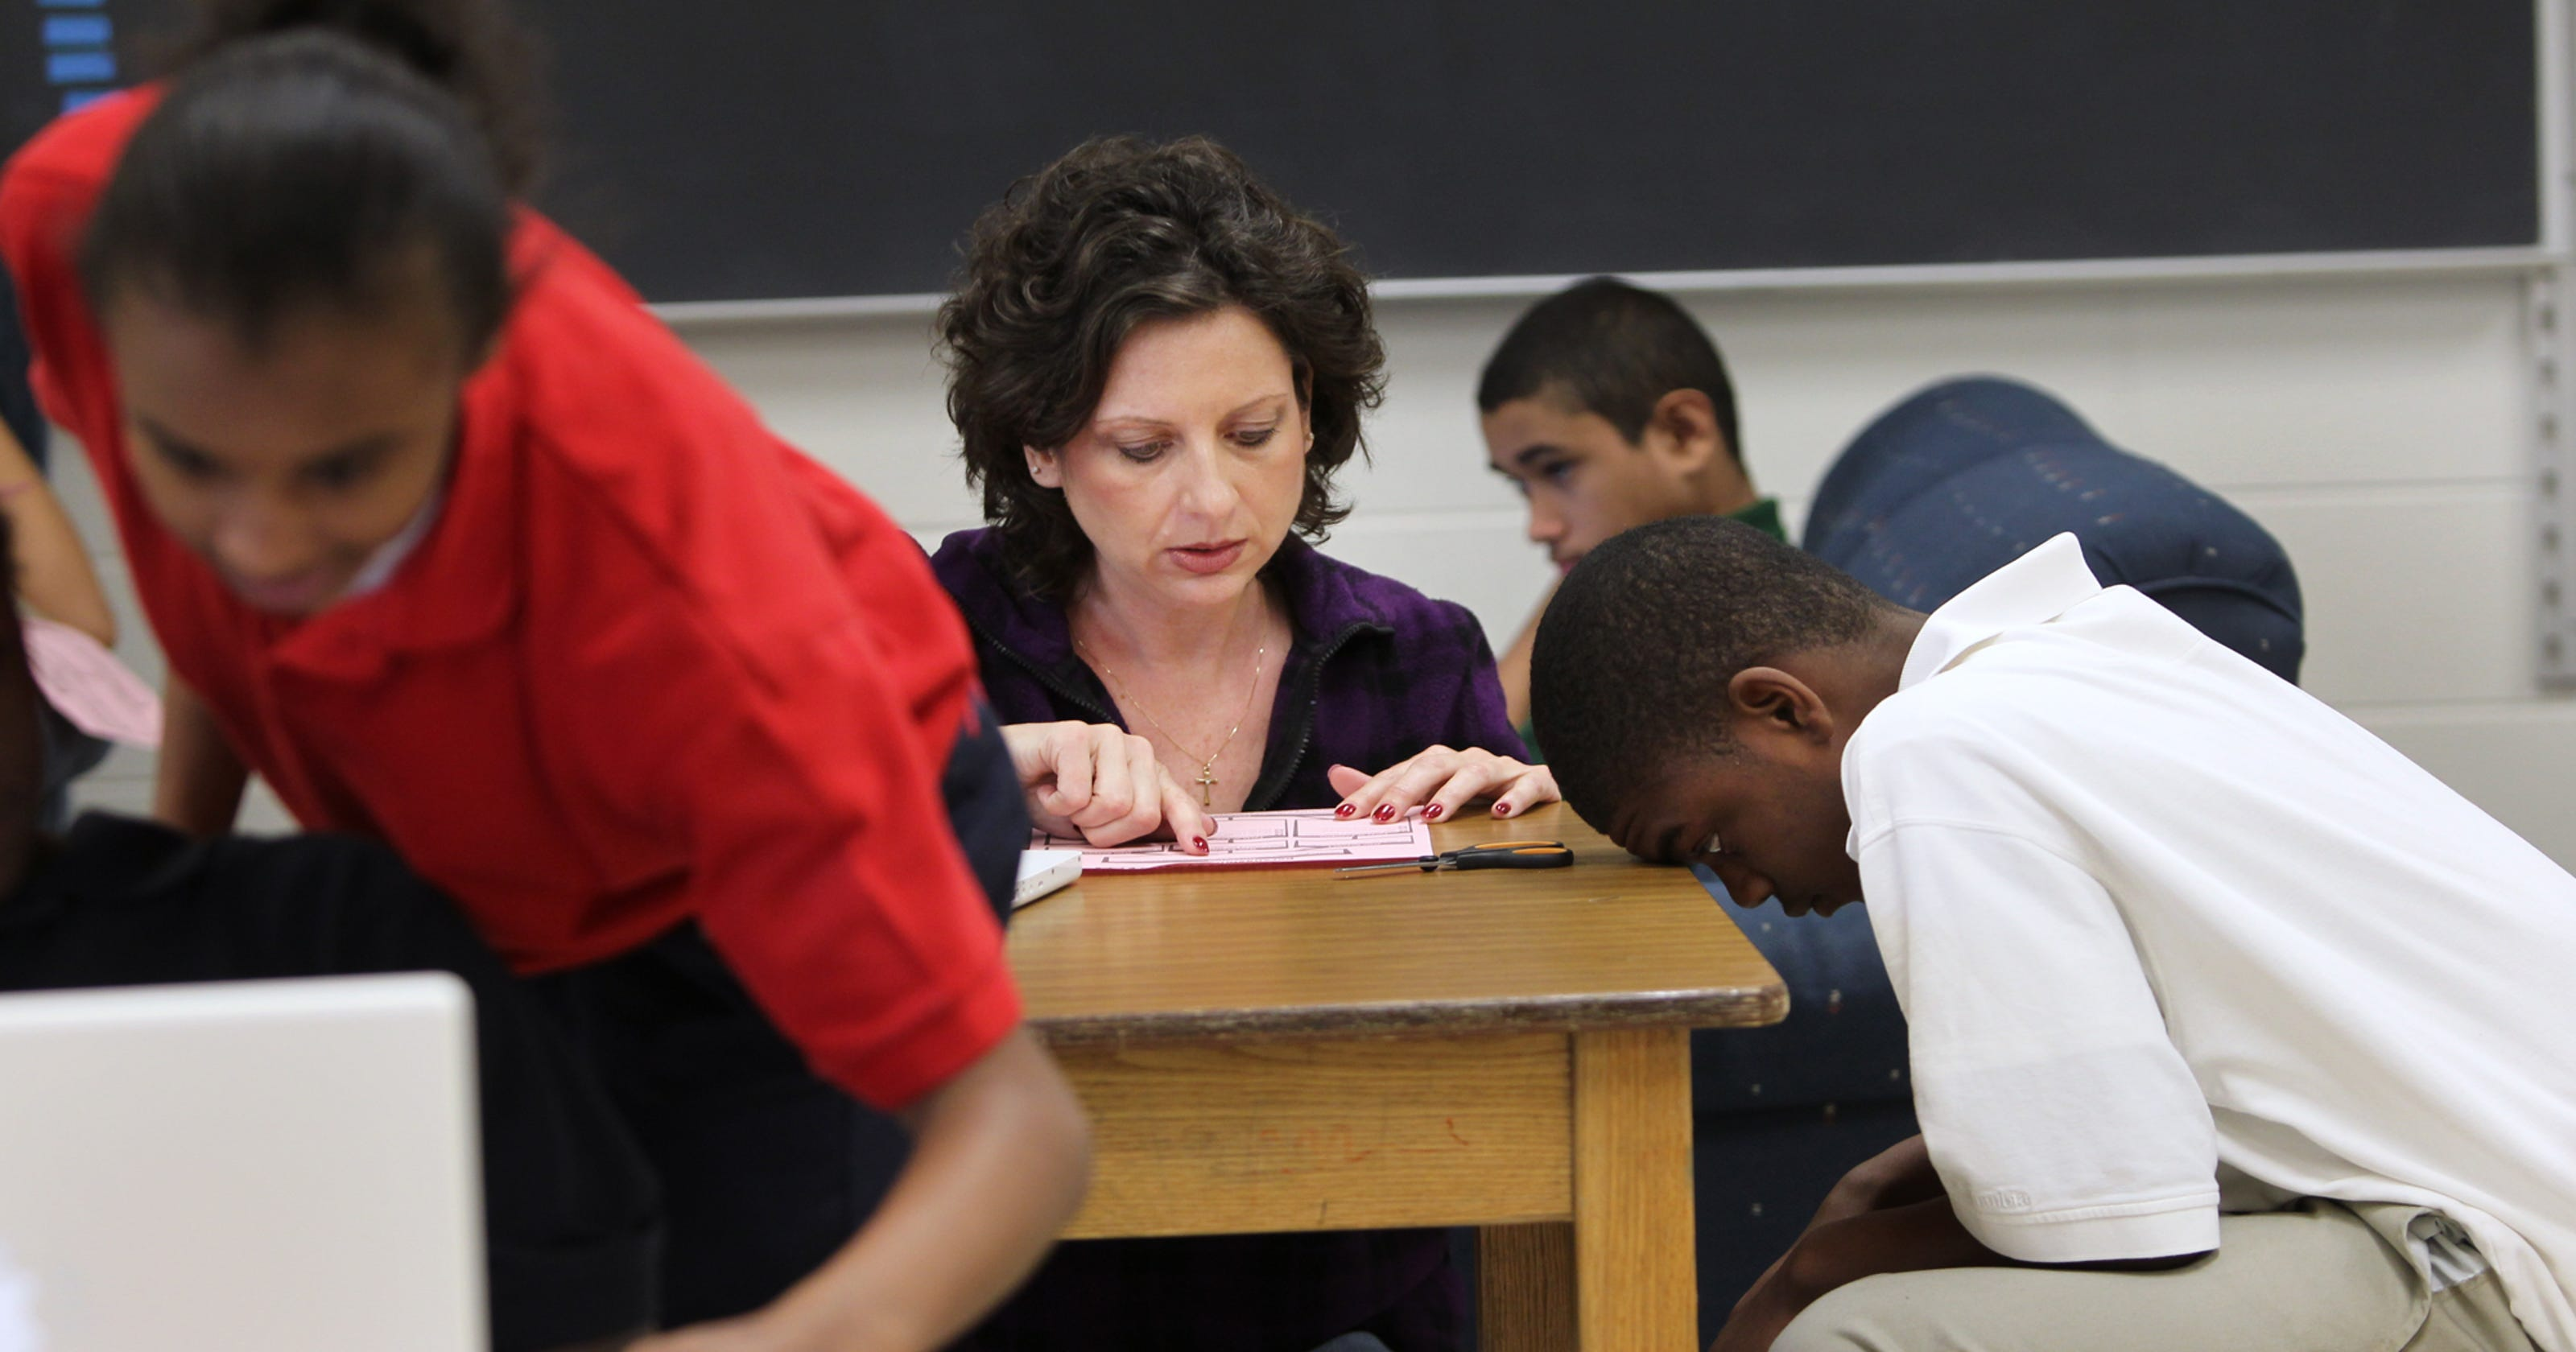 Teachers absent from class way too much, study says